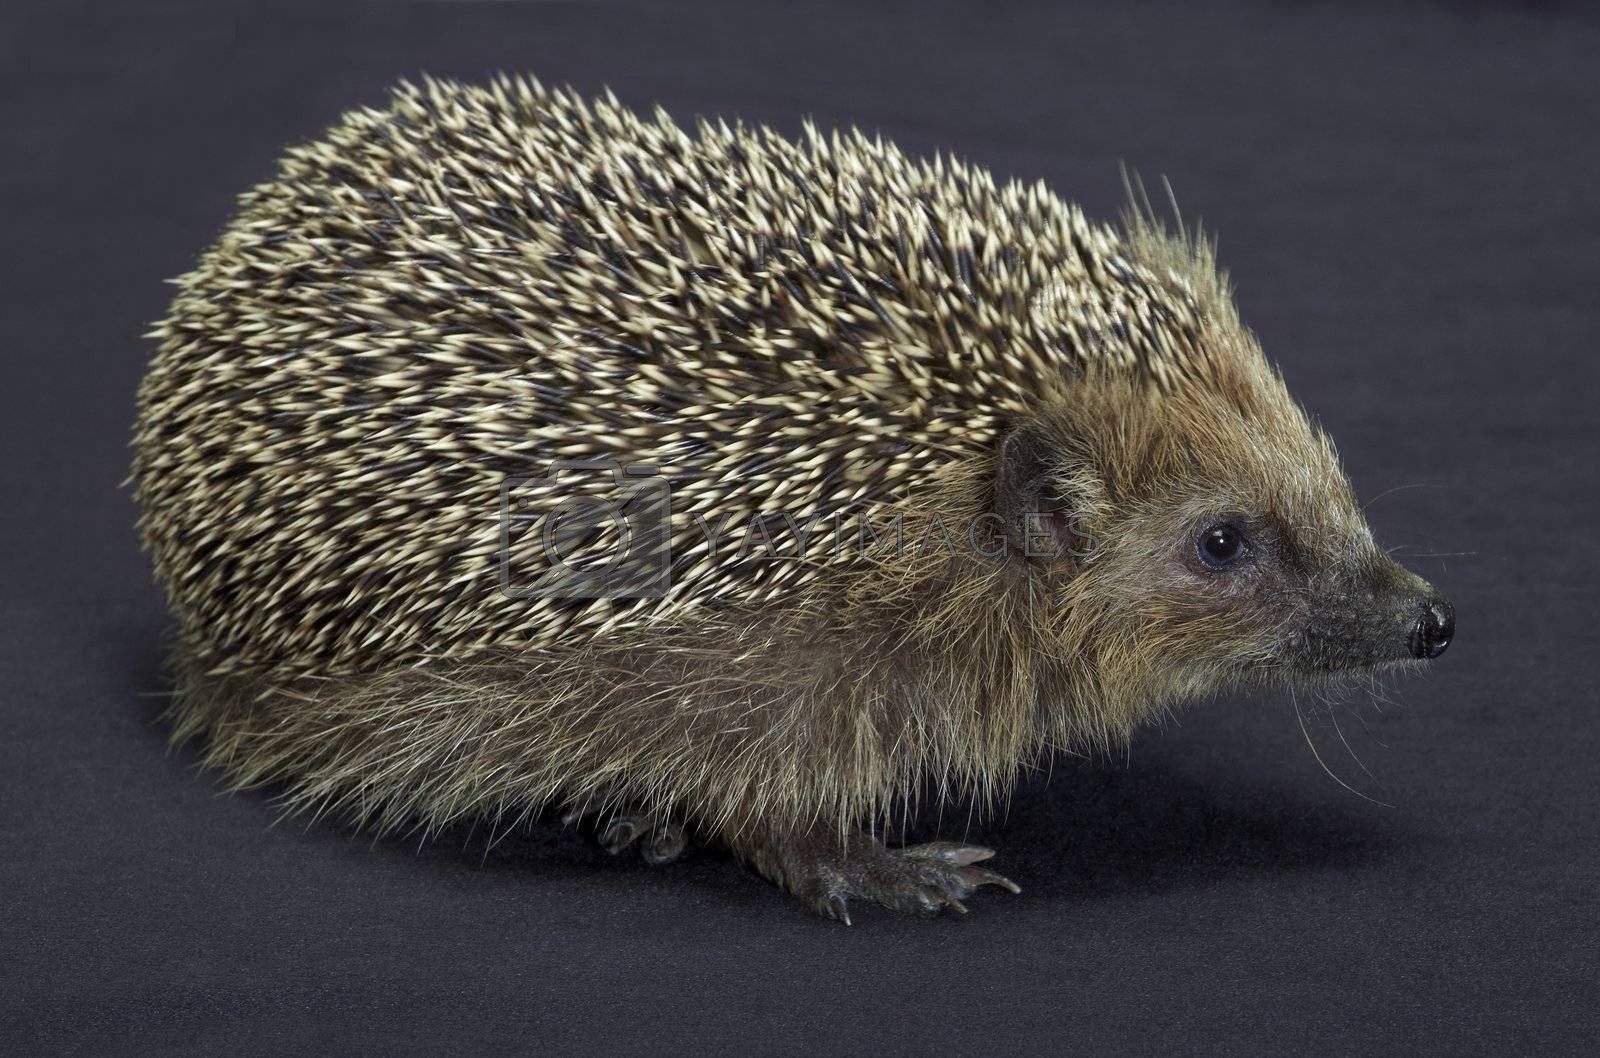 angle shot of a young hedgehog. Studio photography in dark back